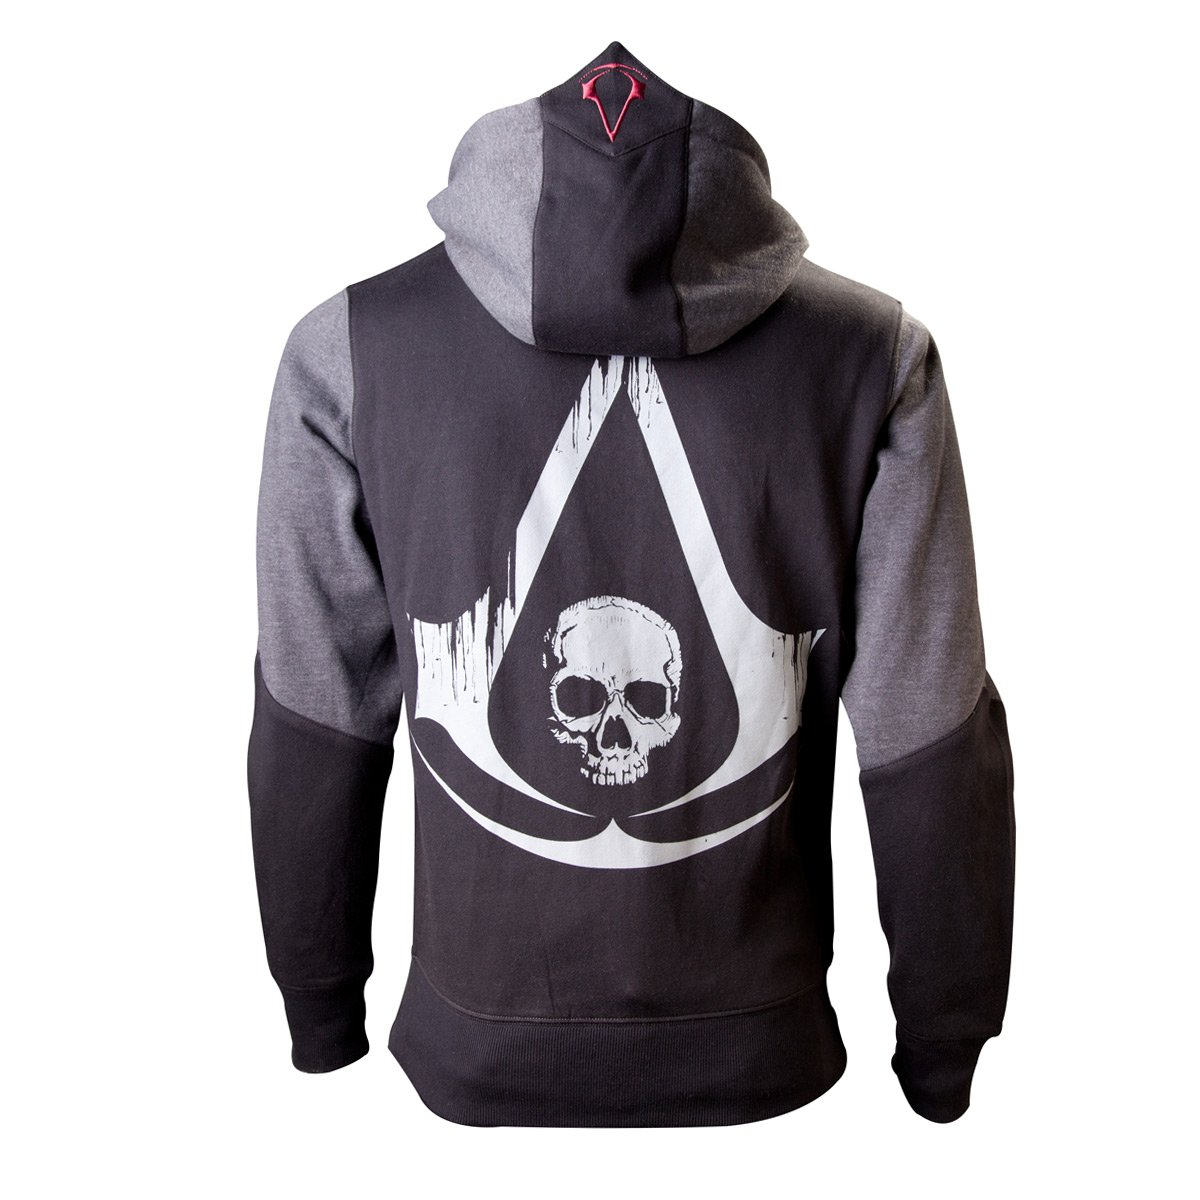 Assassins Creed IV Black Flag - Hooded Sweatshirt Logo (S) --- BIO-HD989018ASC-M